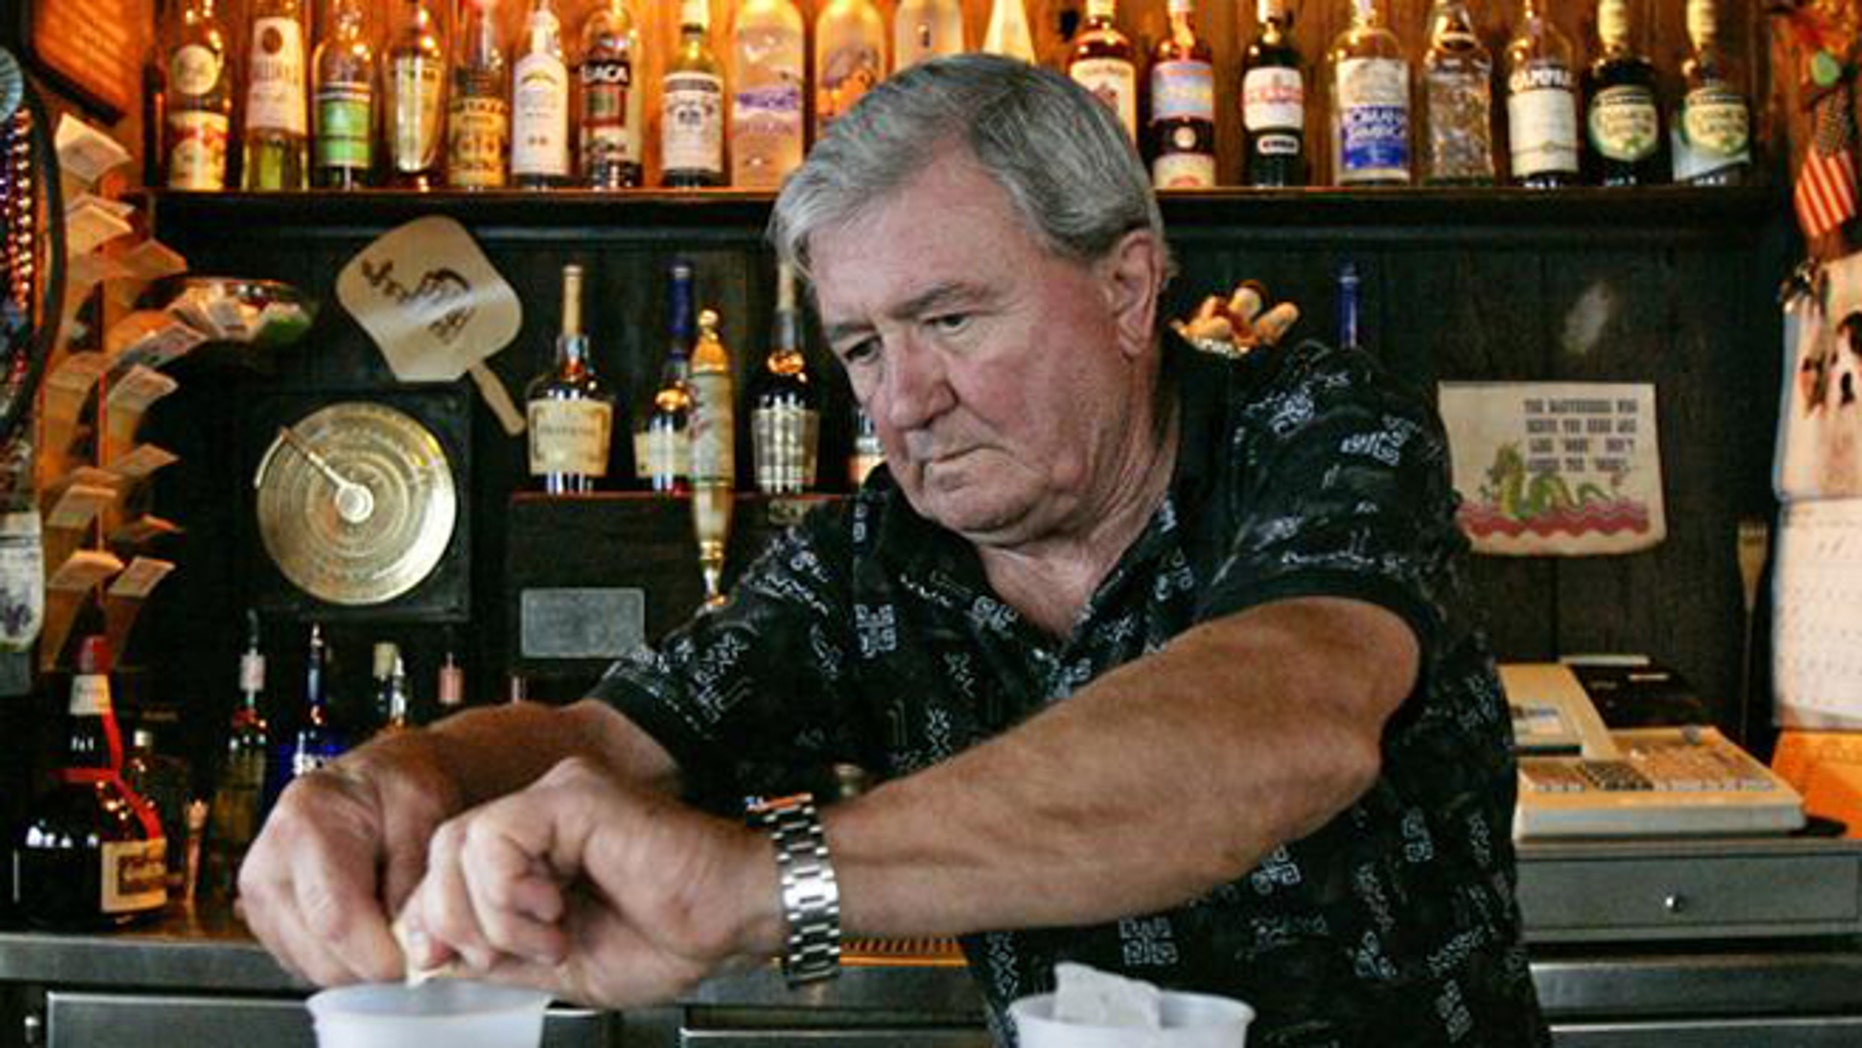 Ray Newman, owner of The Chart Room bar prepares a couple of cocktails after cleaning his bar in preparation to re-opening it in the French Quarter district Thursday, Sept. 29, 2005, in New Orleans. A month after Hurricane Katrina hit the Gulf Coast, New Orleans Mayor Ray Nagin invited business owners back into the city, and prepared to allow most residents to return over the next week. (AP Photo/Kevork Djansezian)